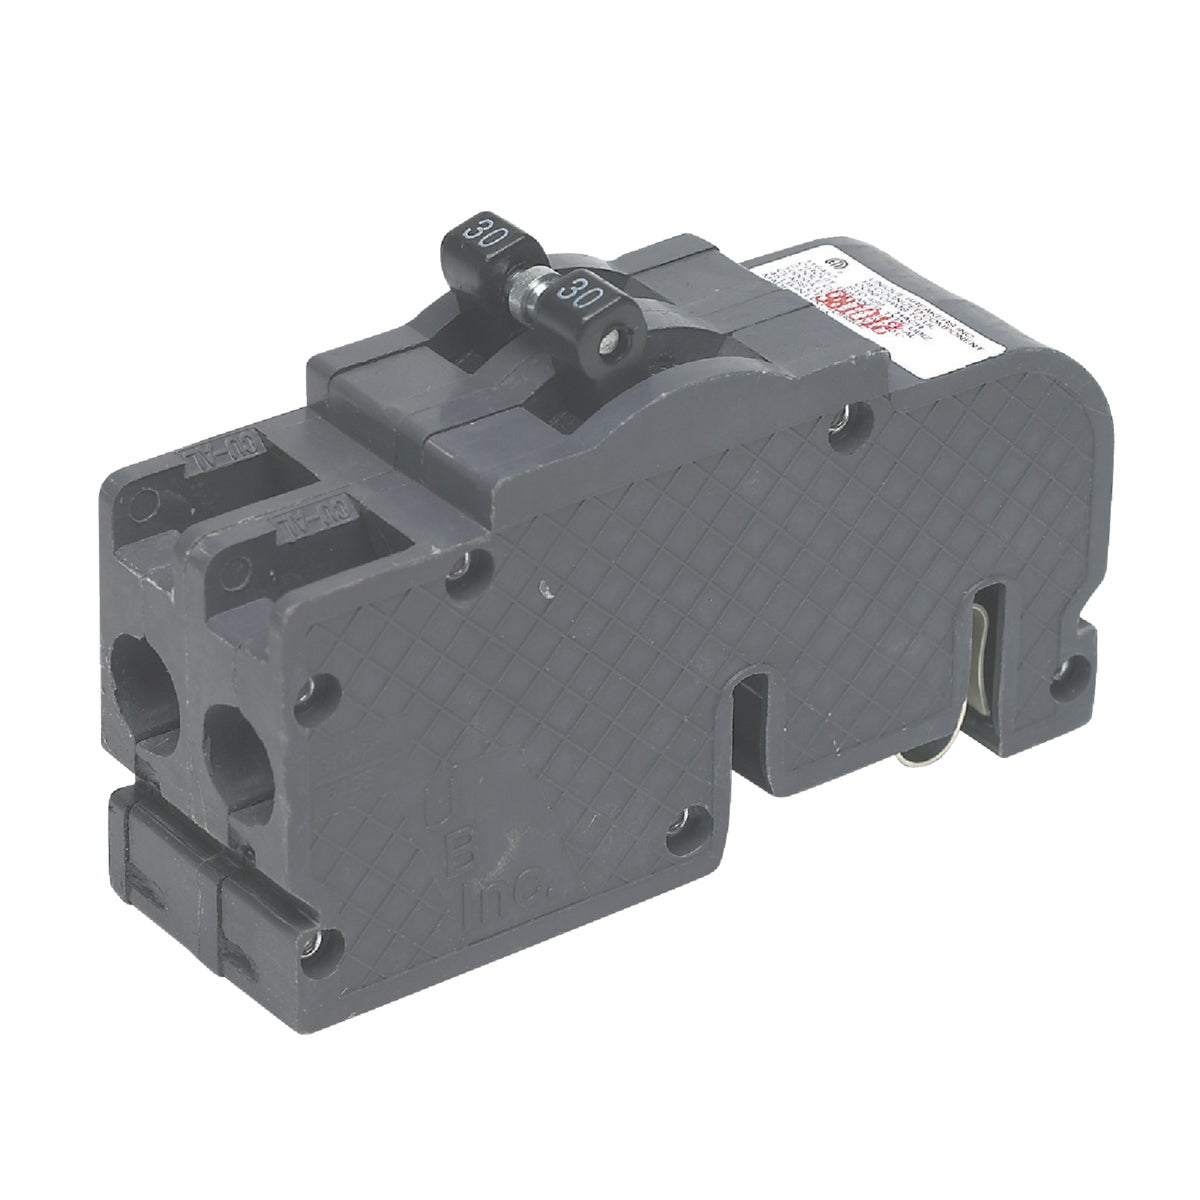 20A 2P CIRCUIT BREAKER - UBIZ220 by Connecticut Electric